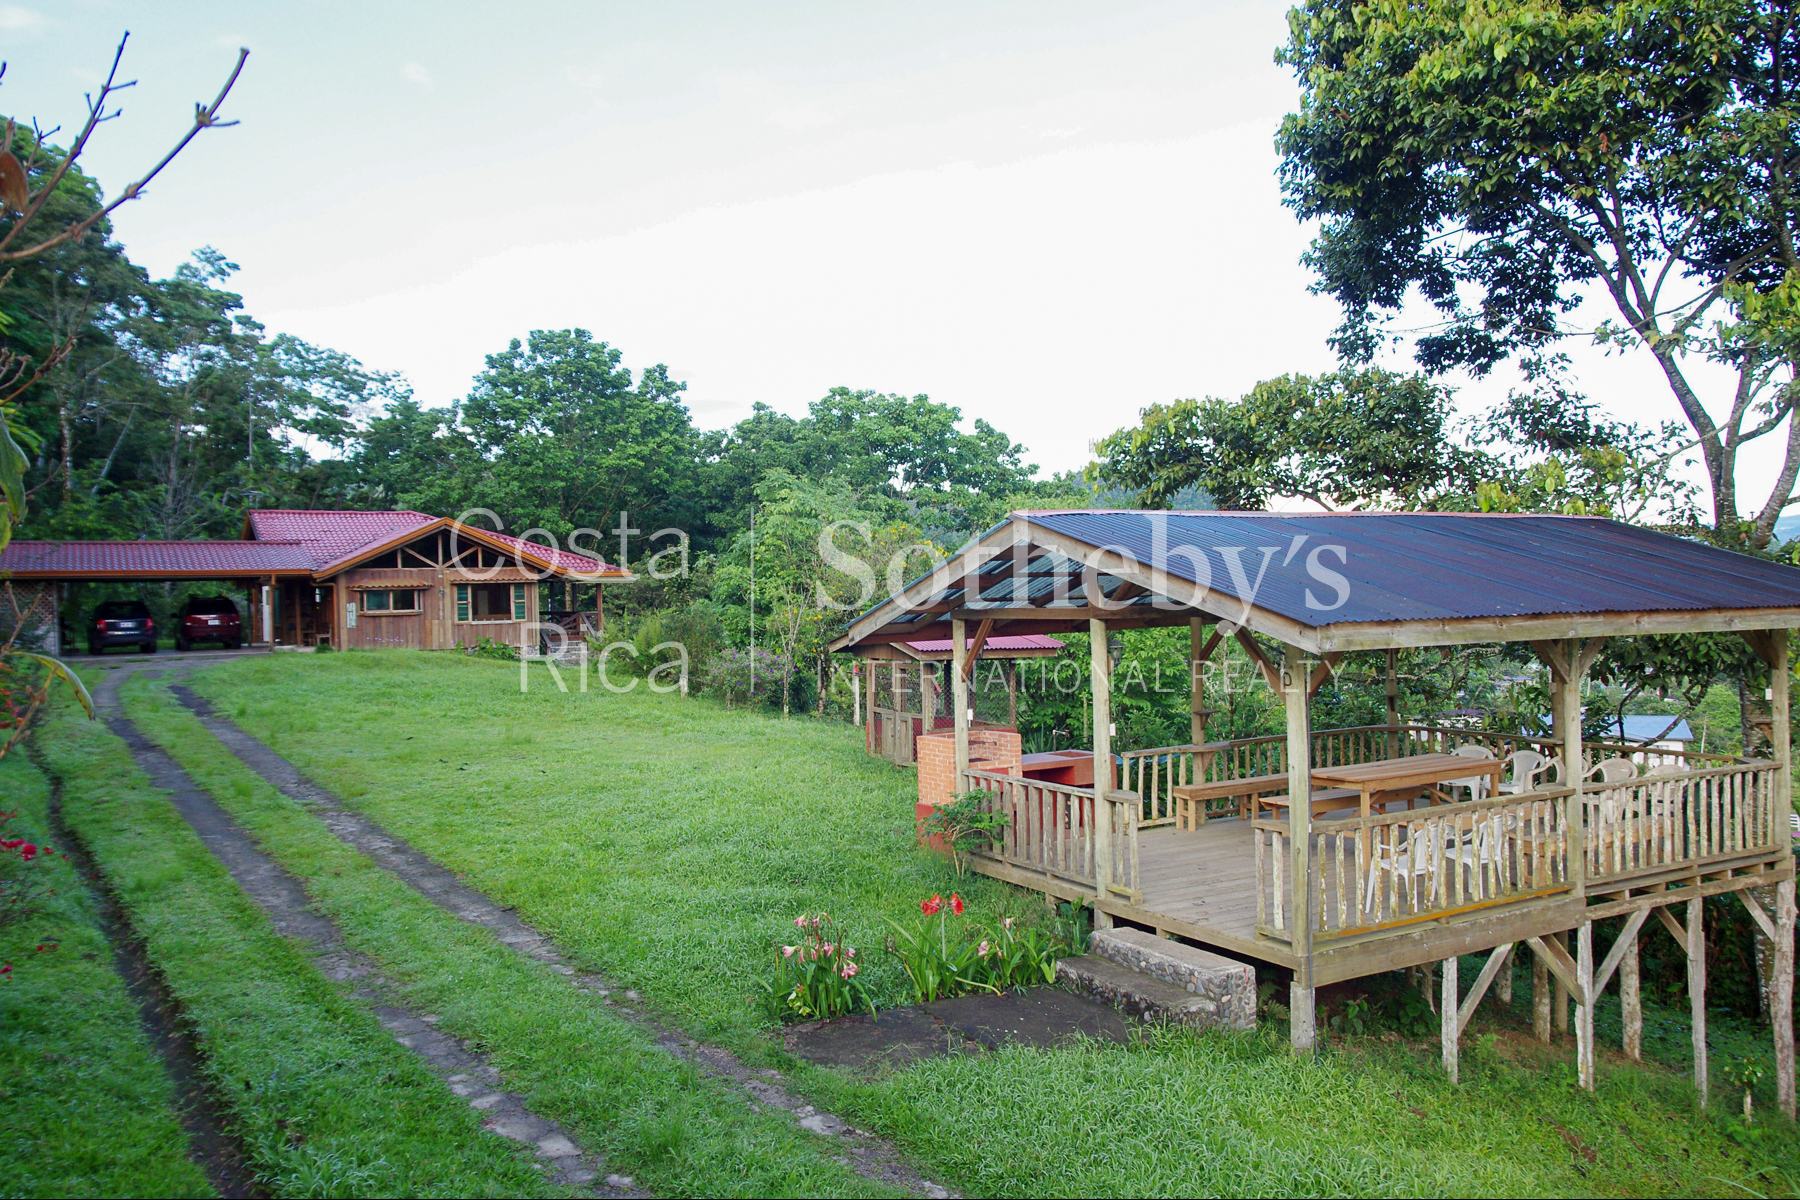 Additional photo for property listing at 300ha+ Finca Turística Turrialba Turrialba, Cartago Costa Rica